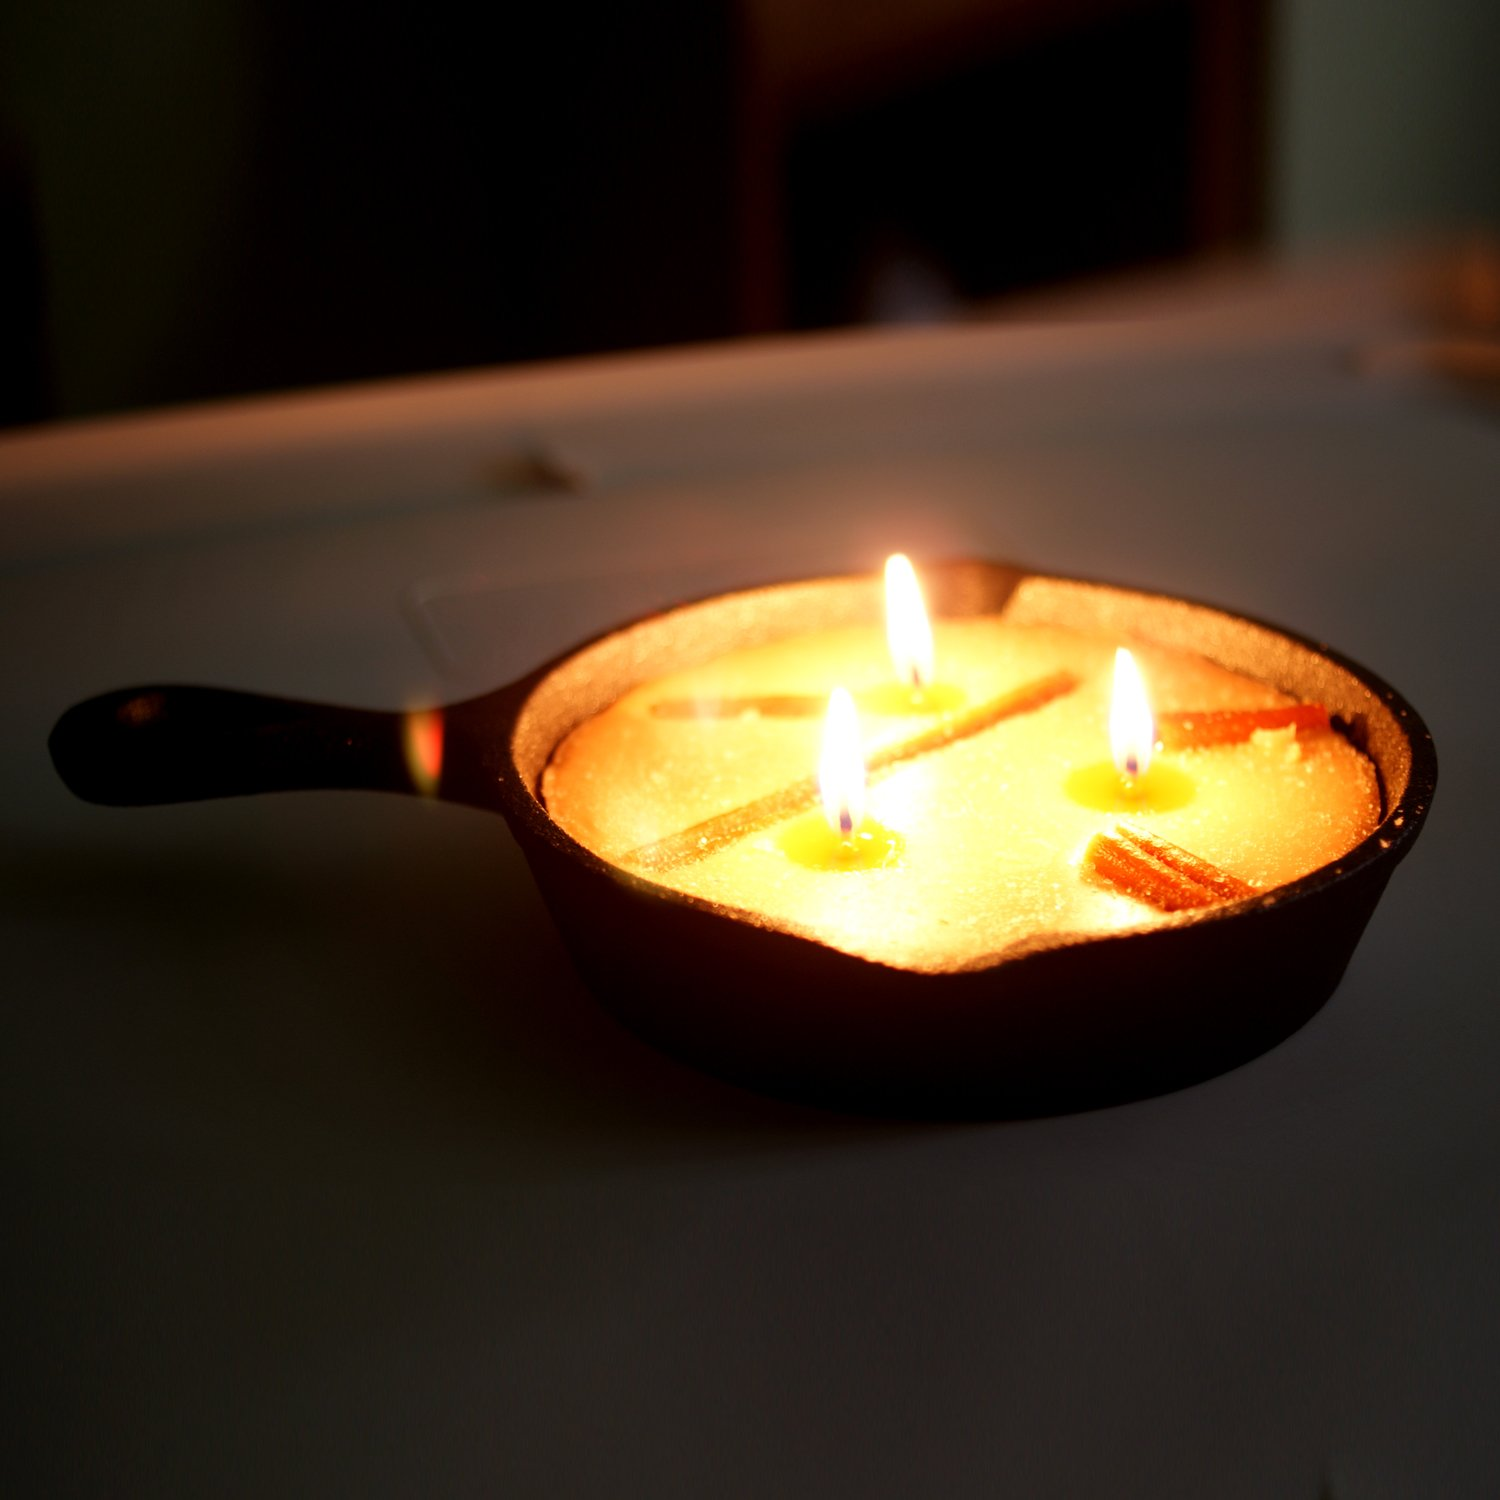 Cast Iron Pan Candle Aromatherapy Scented Candles On Real Cast Iron Pan Bright Ideas Blueberry Cobbler